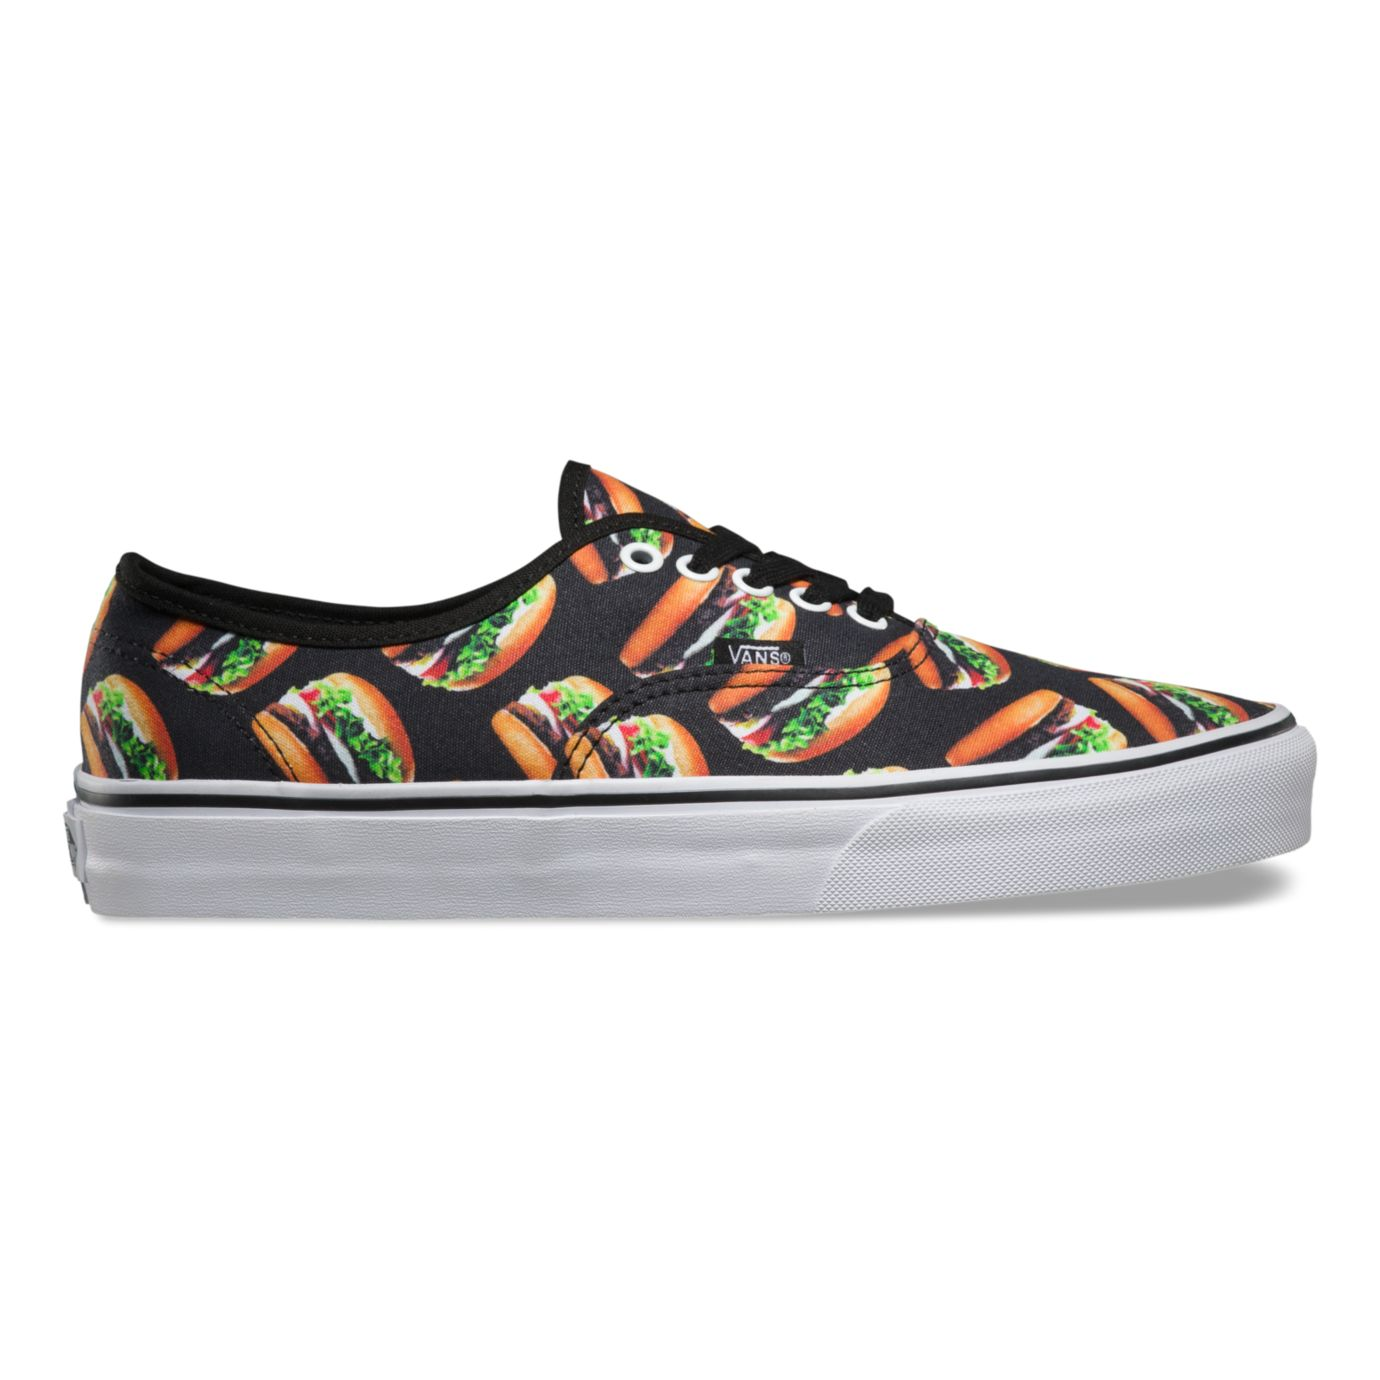 3151489b8f32 Curb Your Food Cravings with the Late Night Pack by Vans